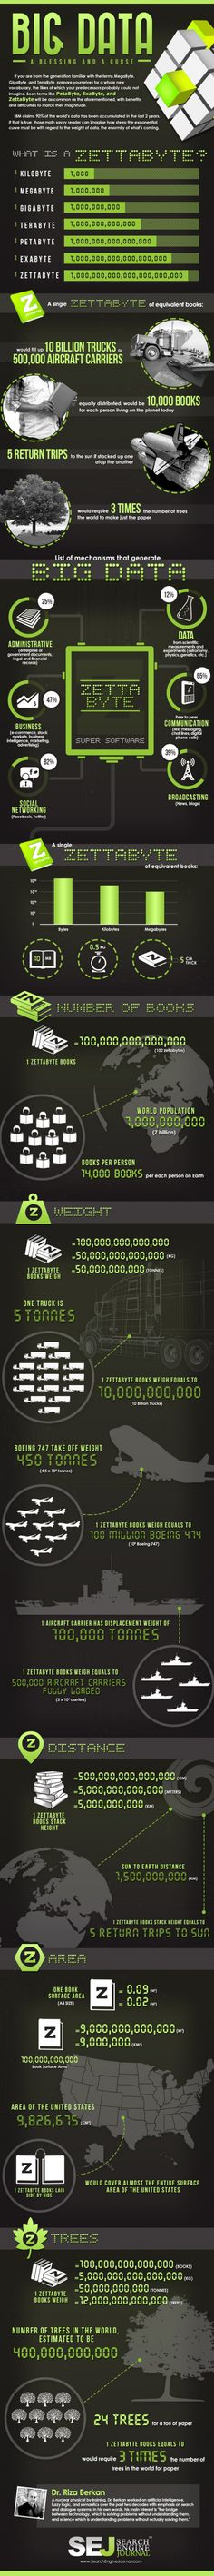 Big Data Infographic - Do you know what a Zettabyte is?   Great infographic and ties to mobile data generators.